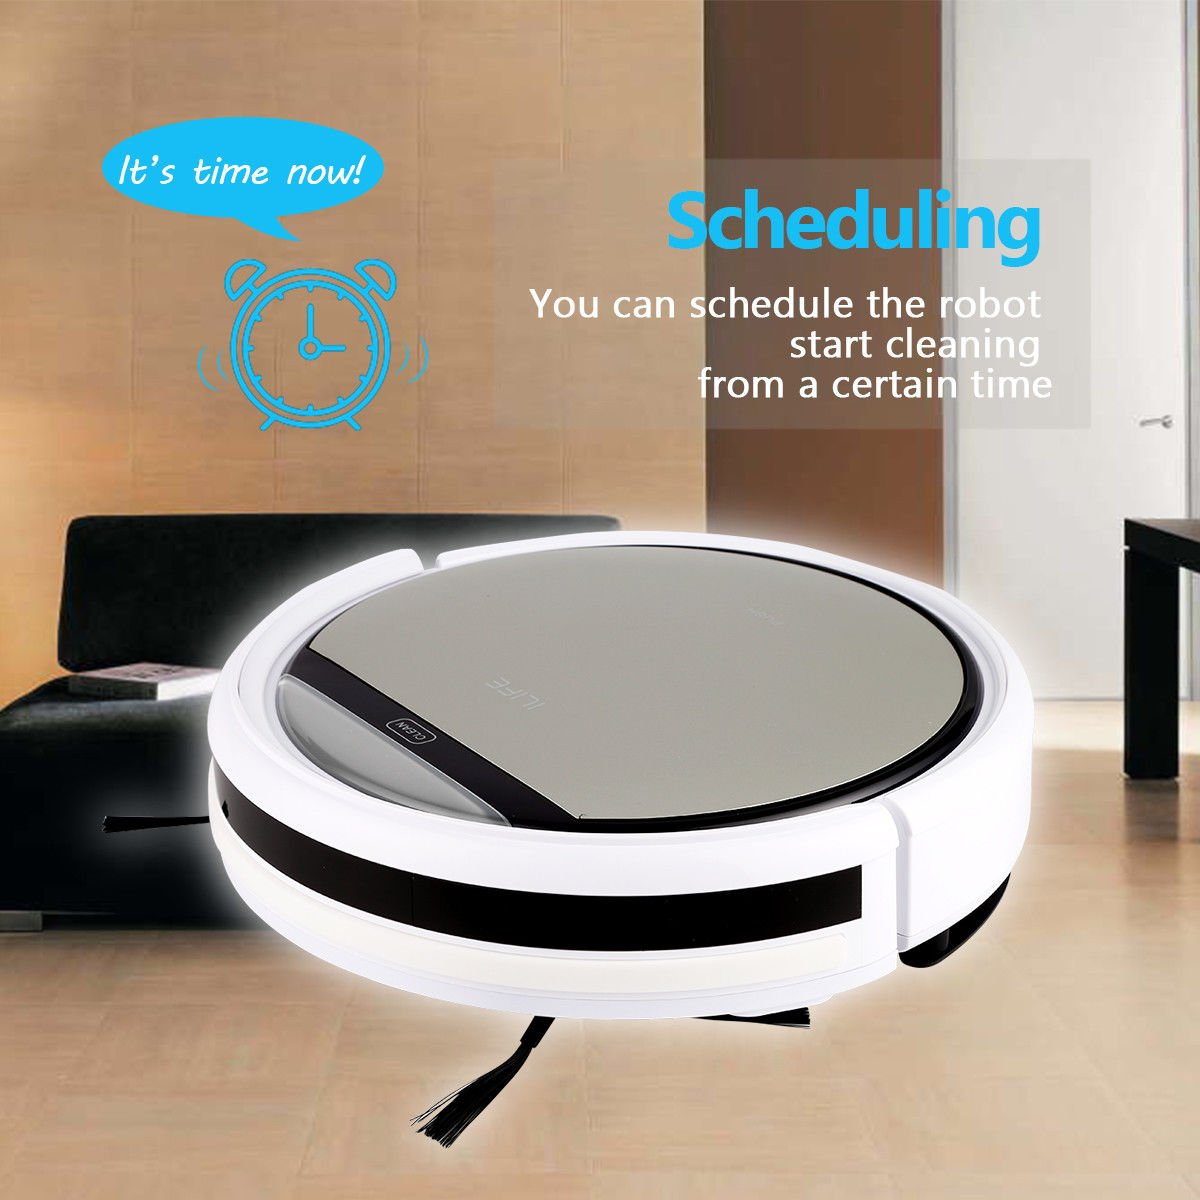 Cleaner Smart Robot Vacuum Cleaning Floor Auto Dust Microfiber Robotic Sweeper Mop Automatic by Alek...Shop (Image #3)